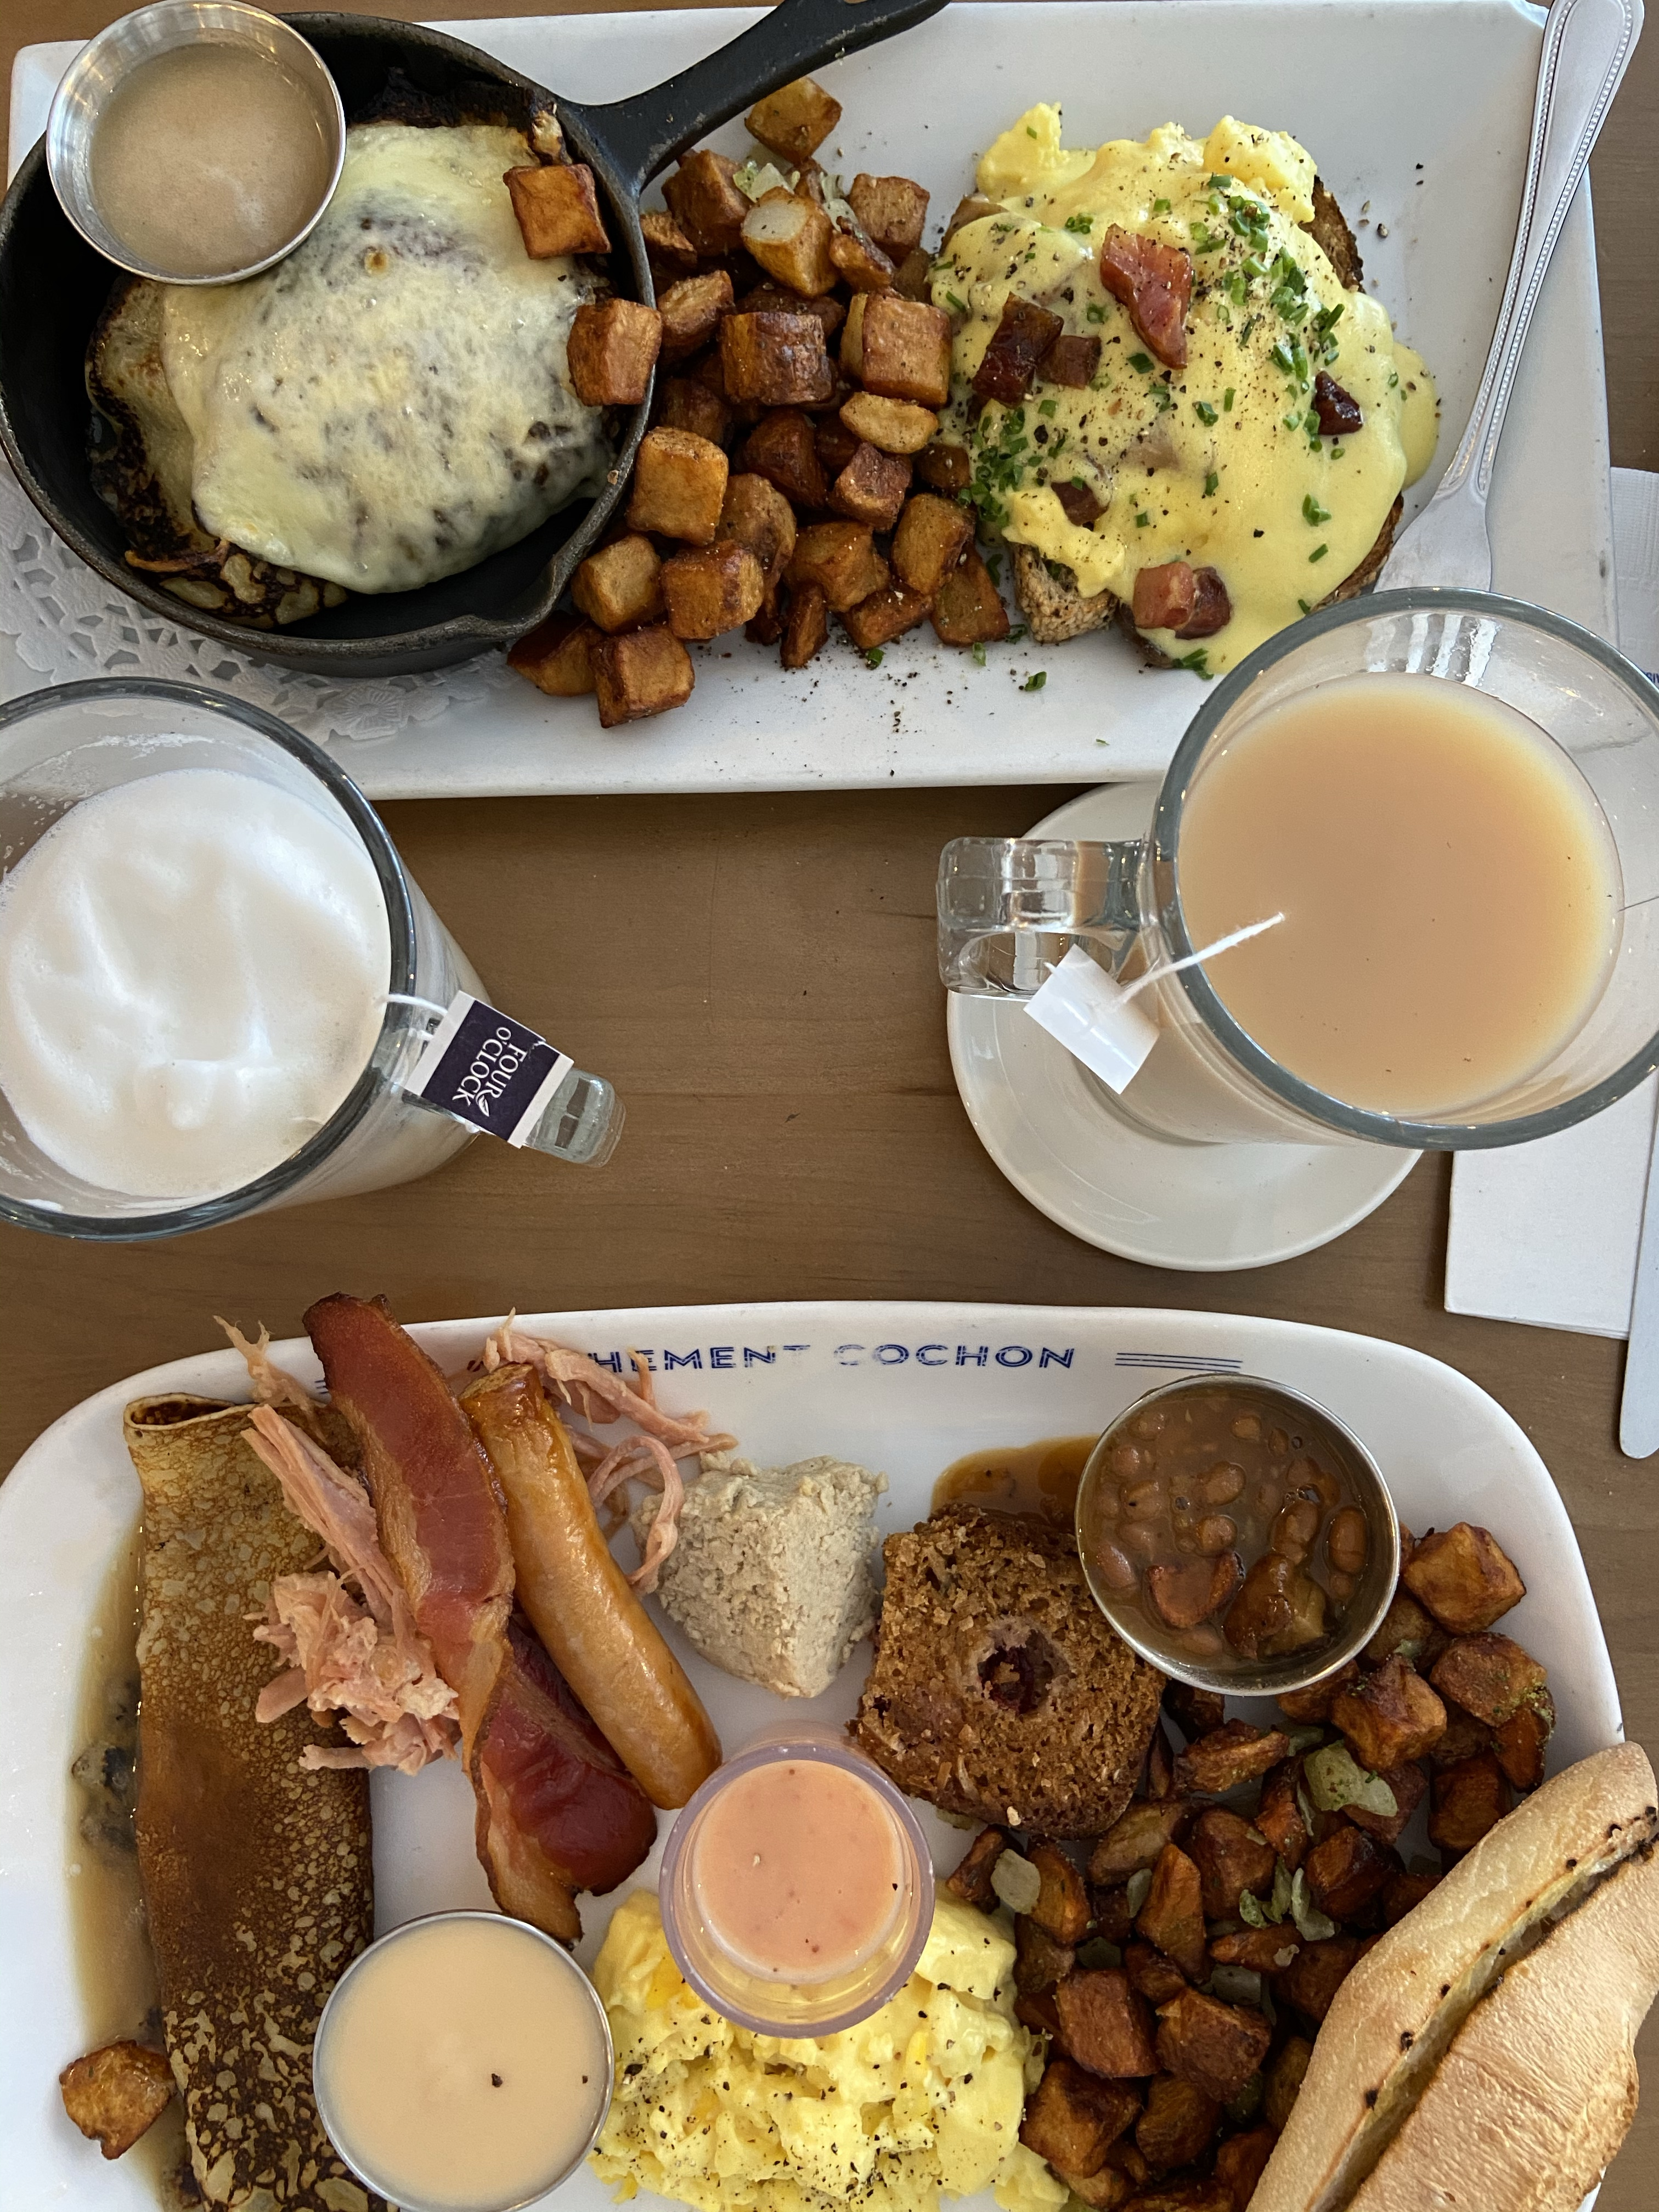 Brunch Cochon Dingue in Old Quebec City with eggs and bacon and sausage and a London Fog